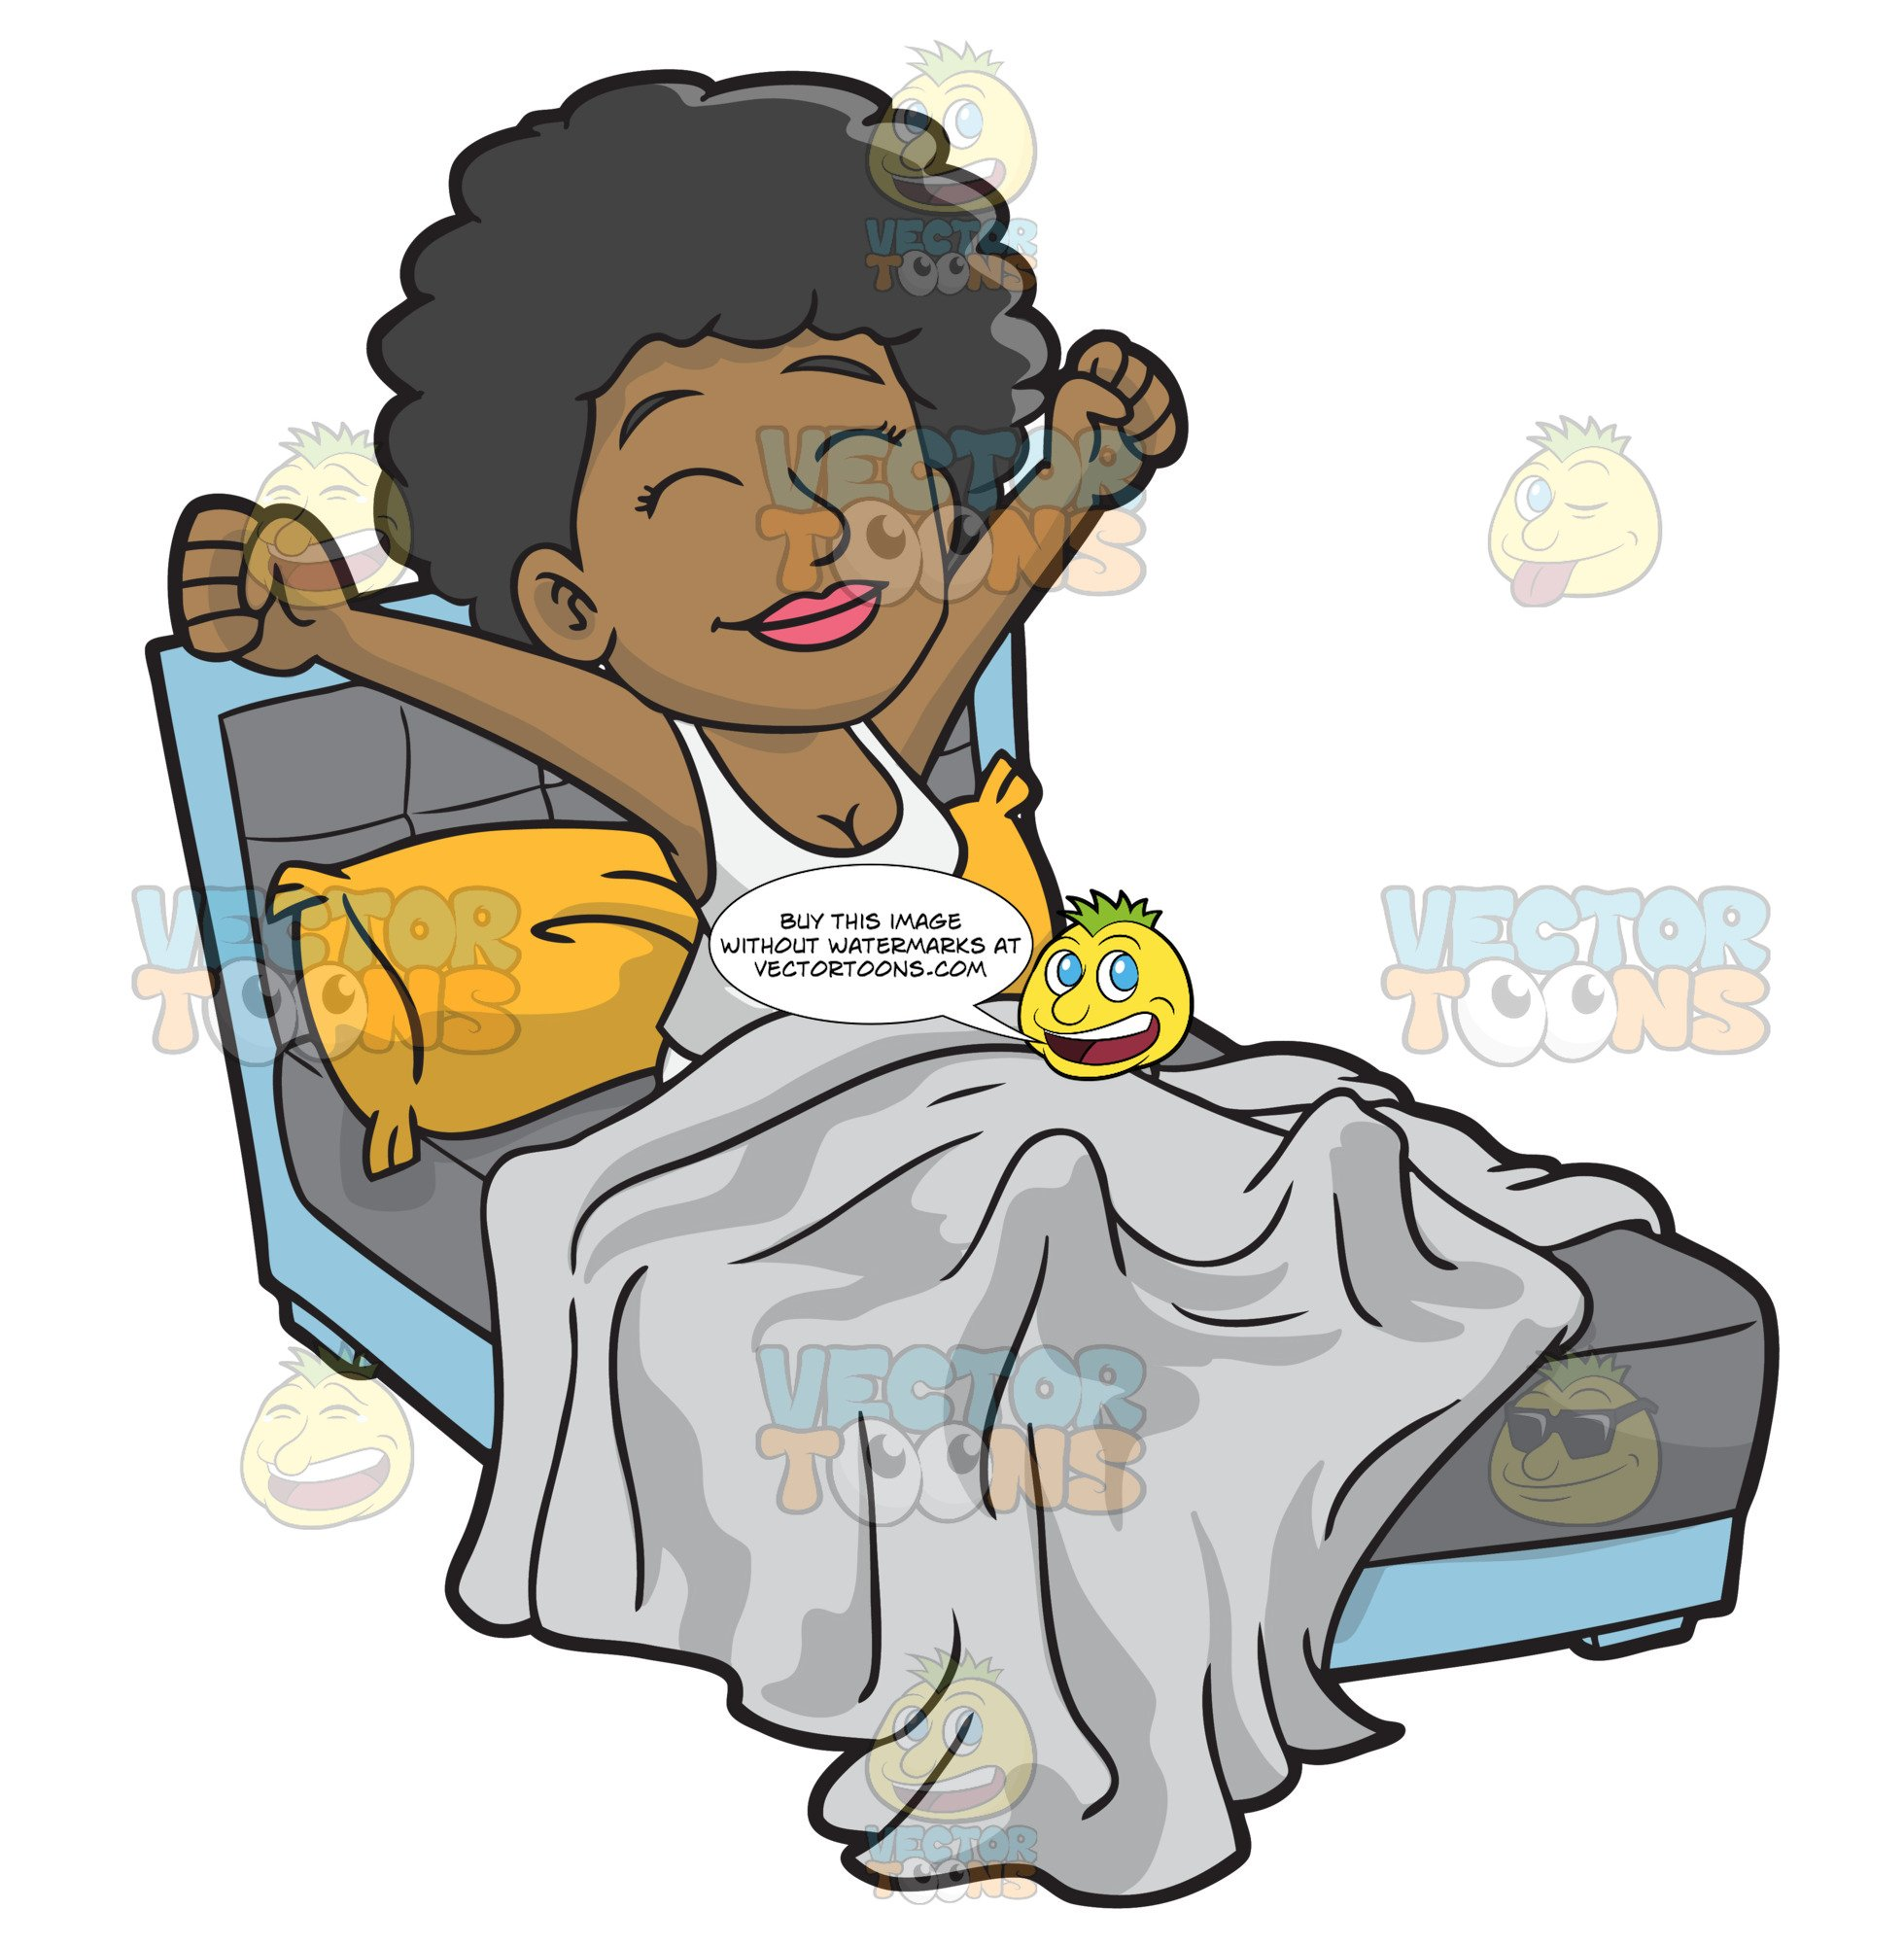 Morning clipart awake, Morning awake Transparent FREE for.